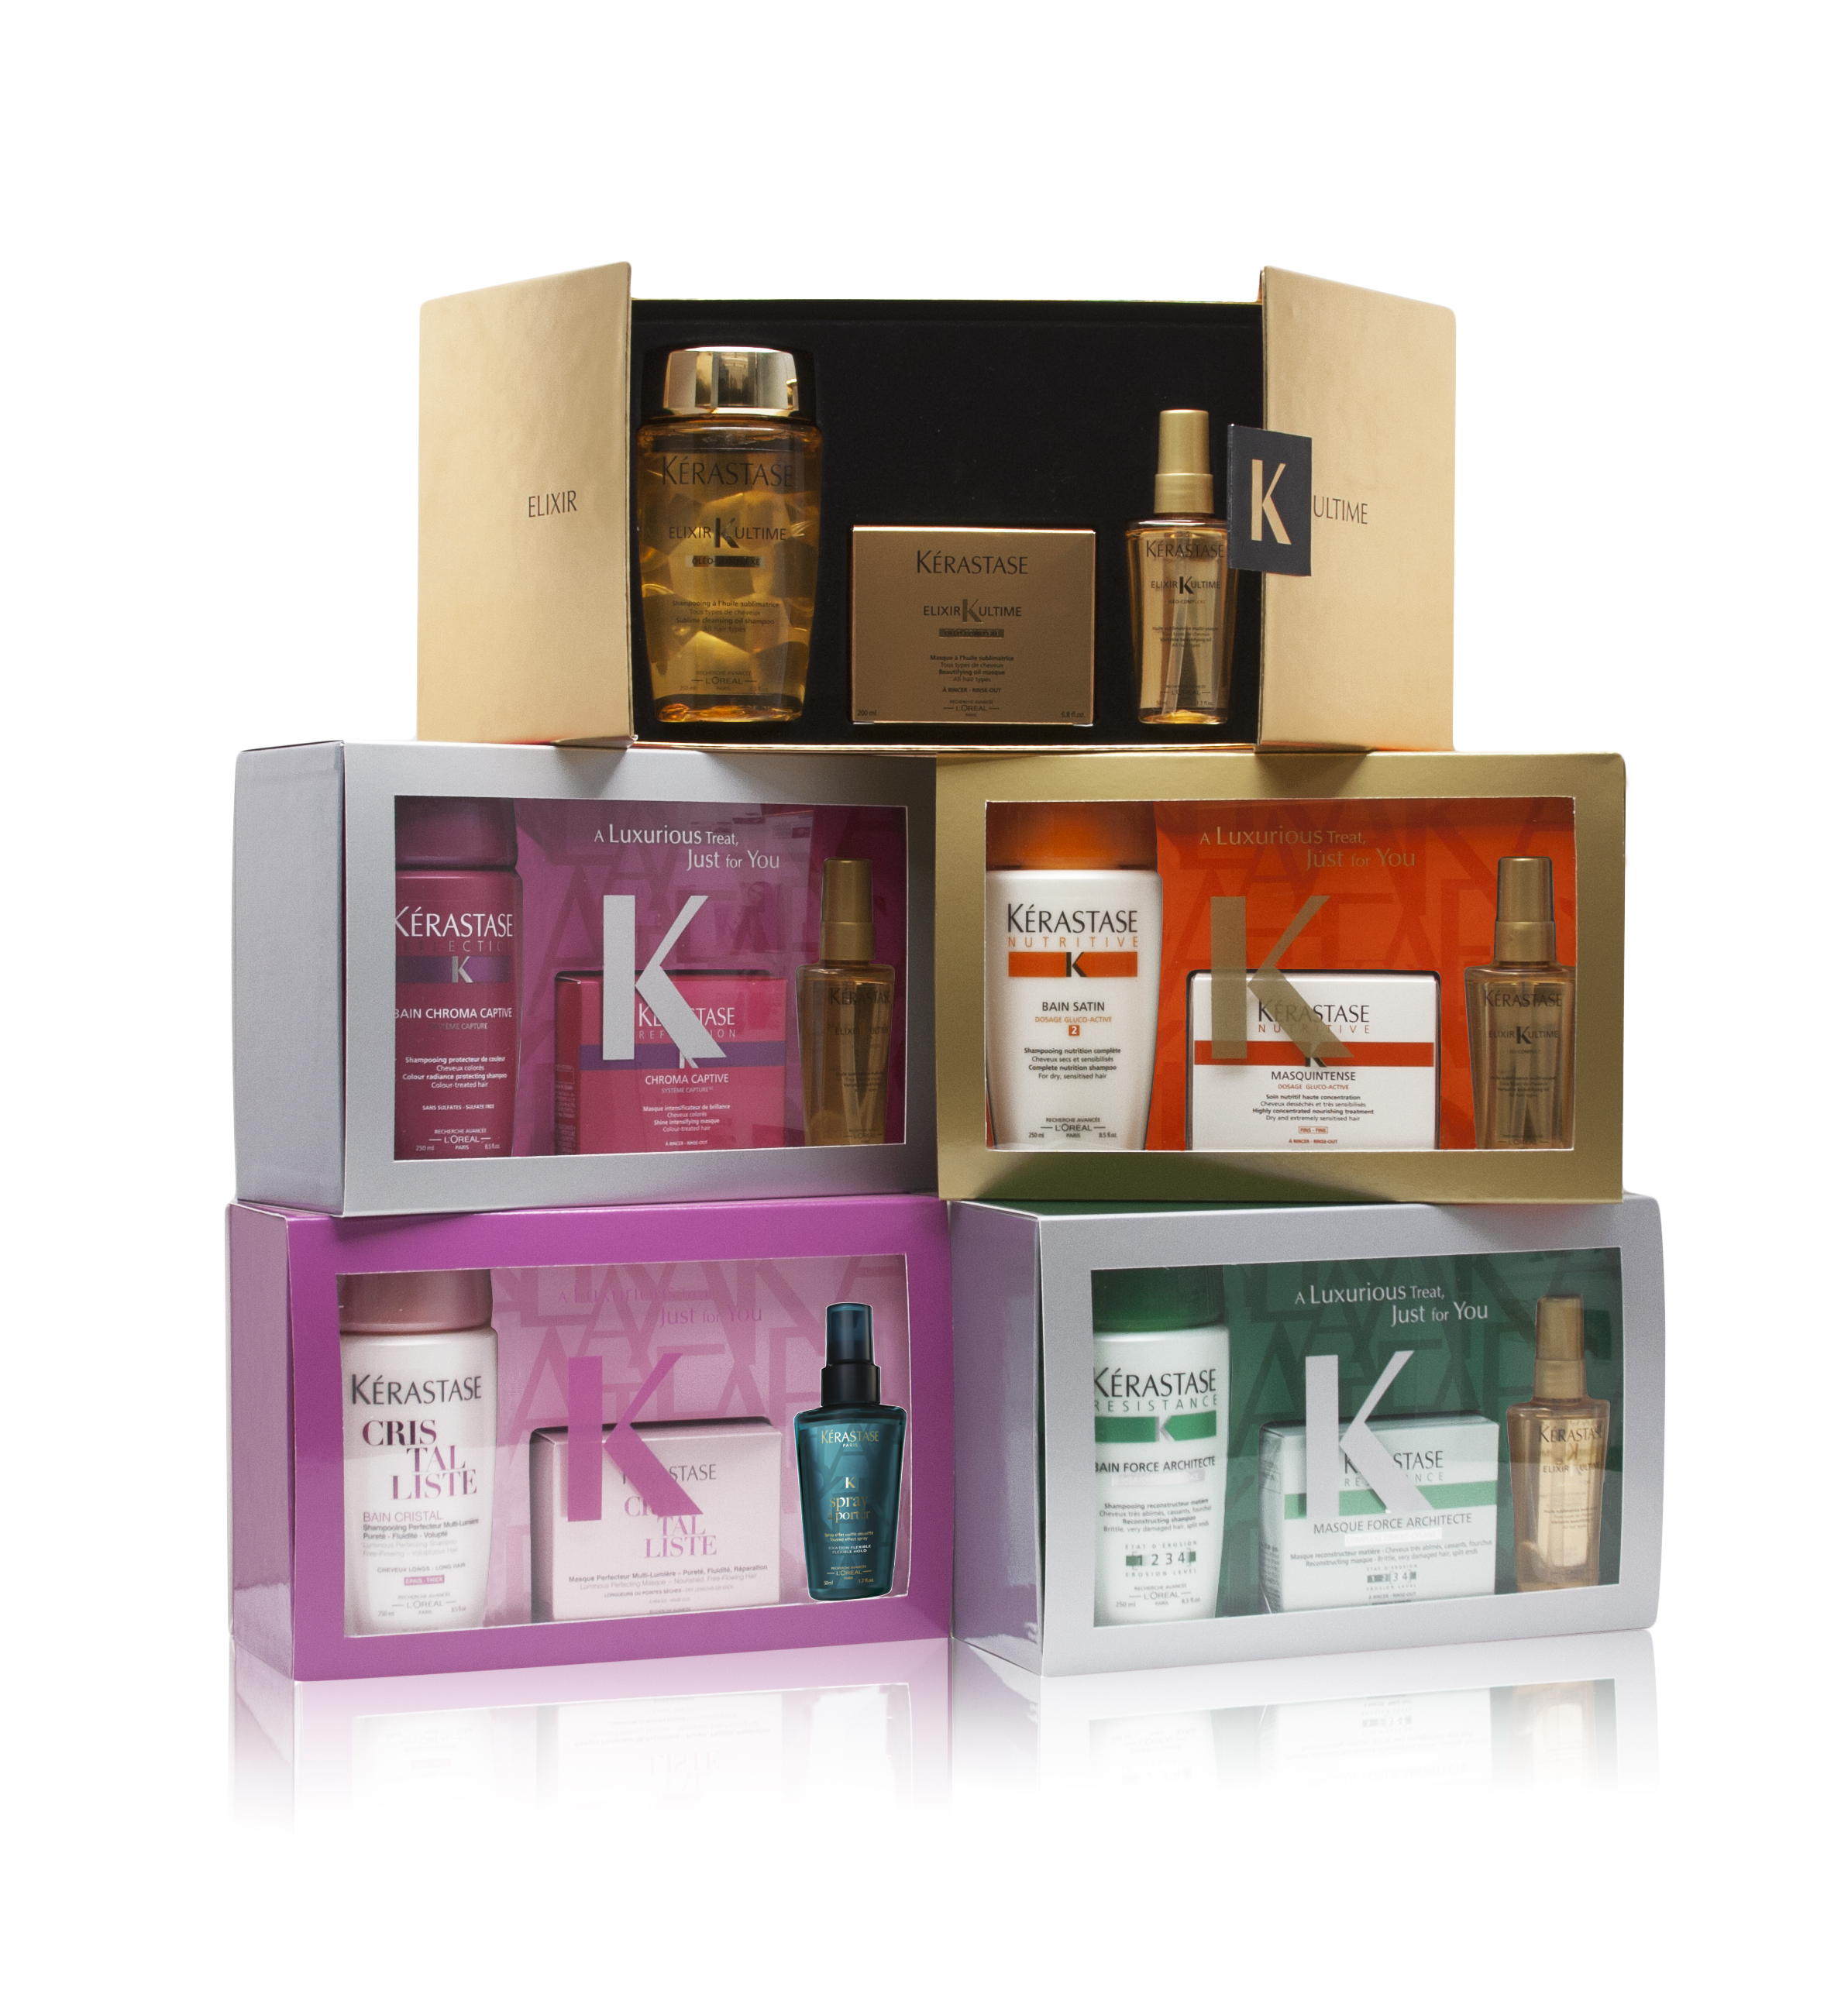 Kérastase holiday gift sets my beauty source